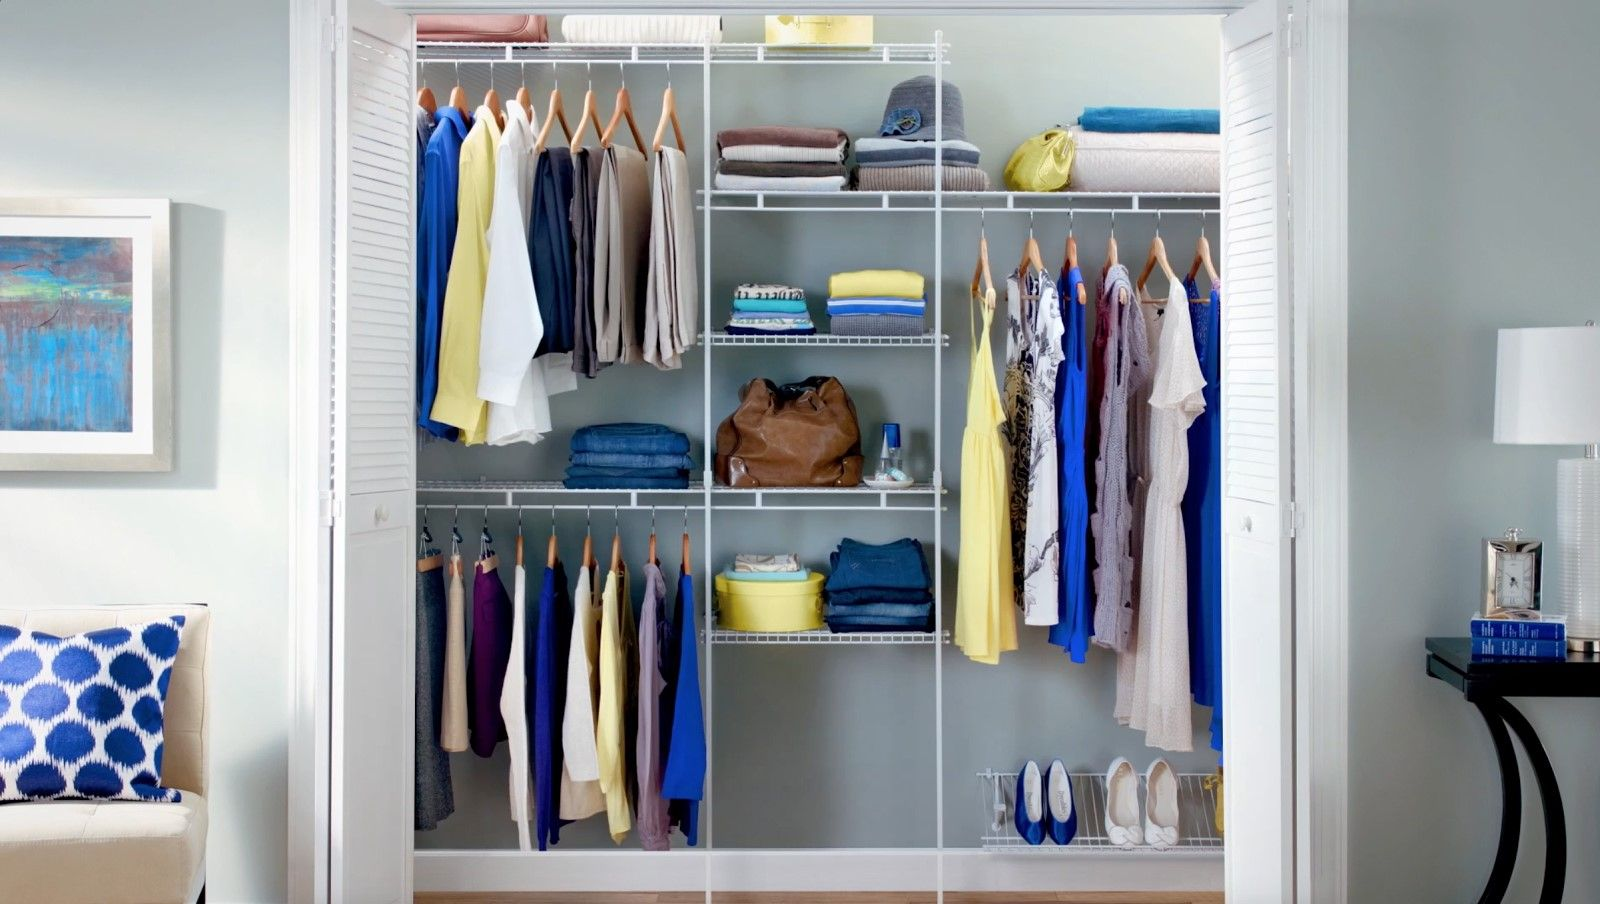 A Wire System In Your Closet Makes Sorting And Storing Your Favorite  Outfits Effortless! Purchase Your Own Wire Closet System On Amazon.